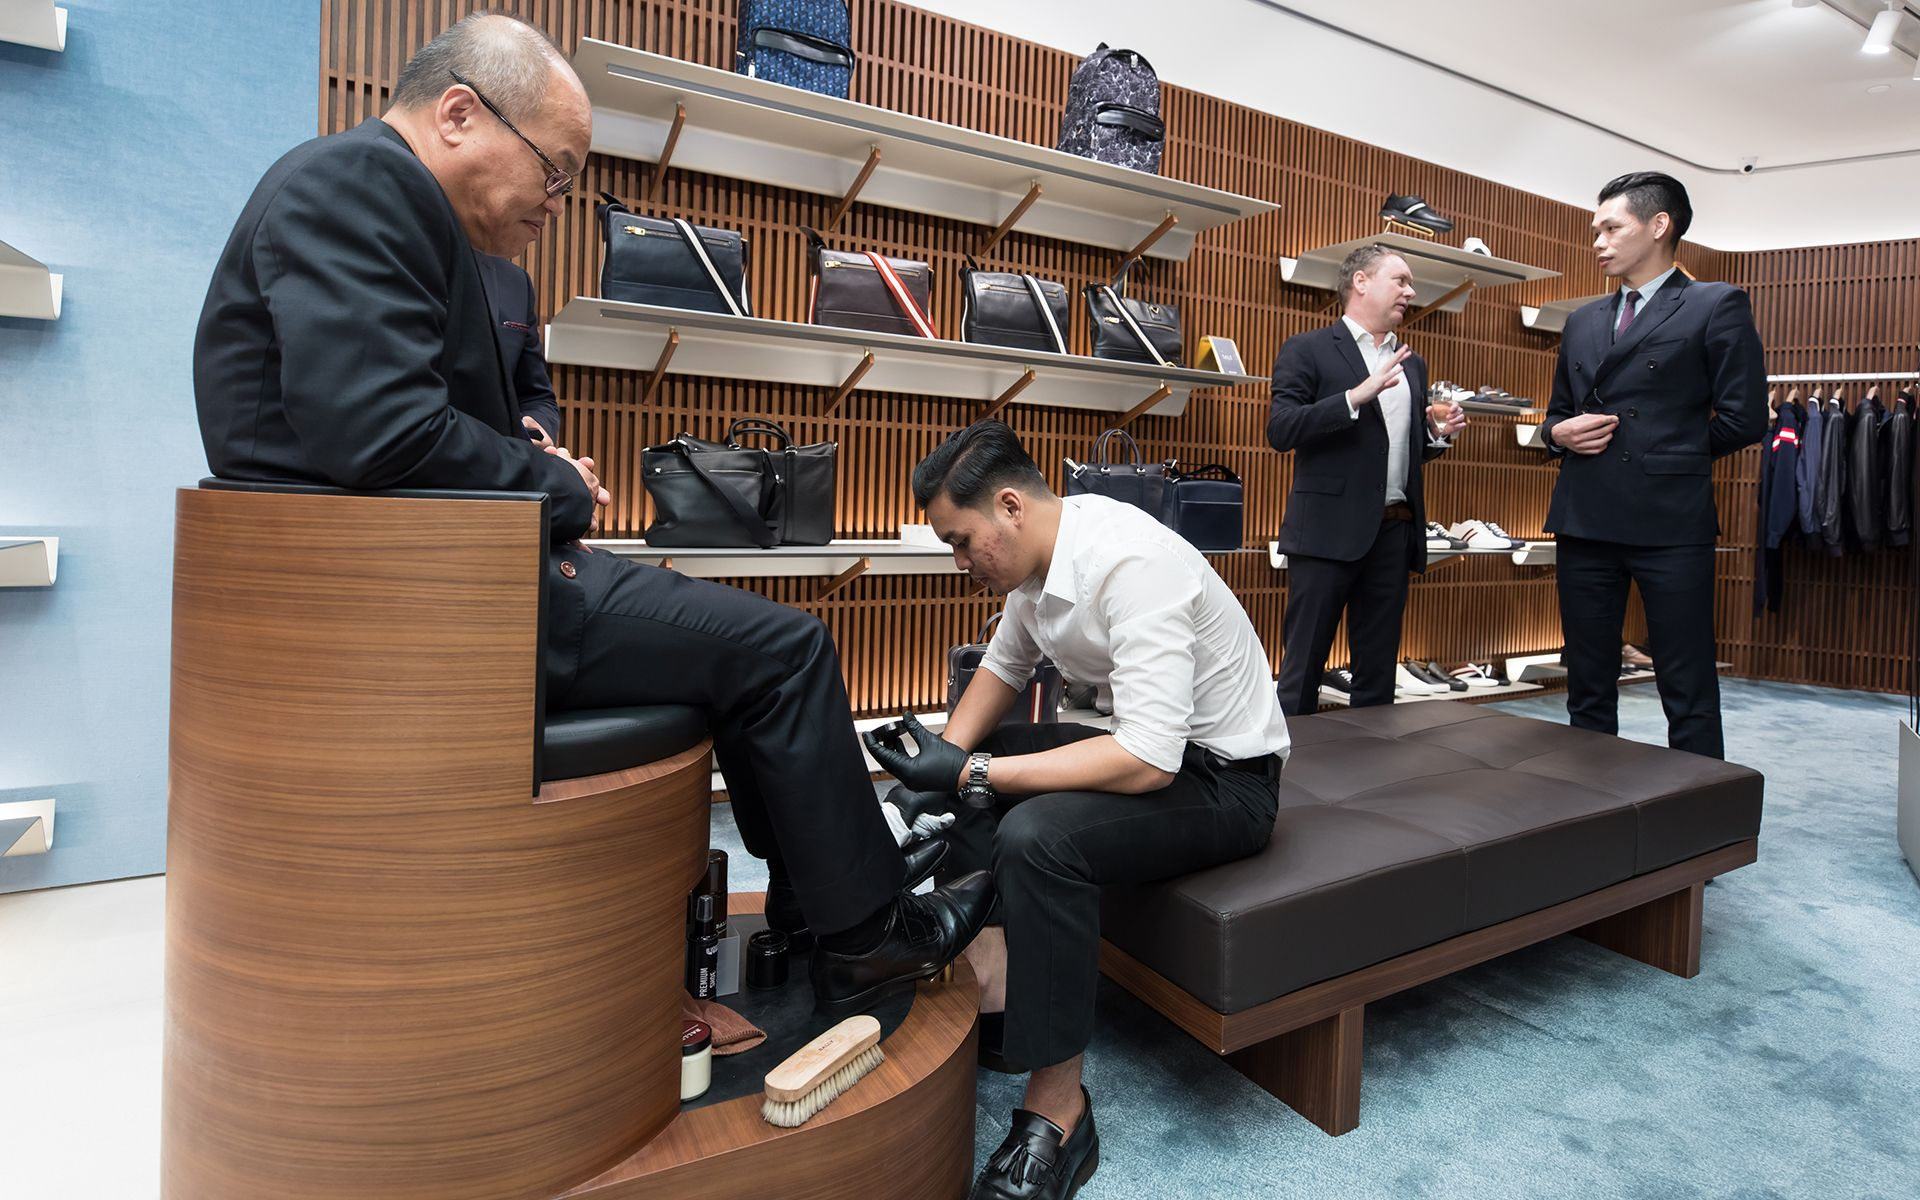 Guests enjoying the personalised service in Bally's contemporary new store design